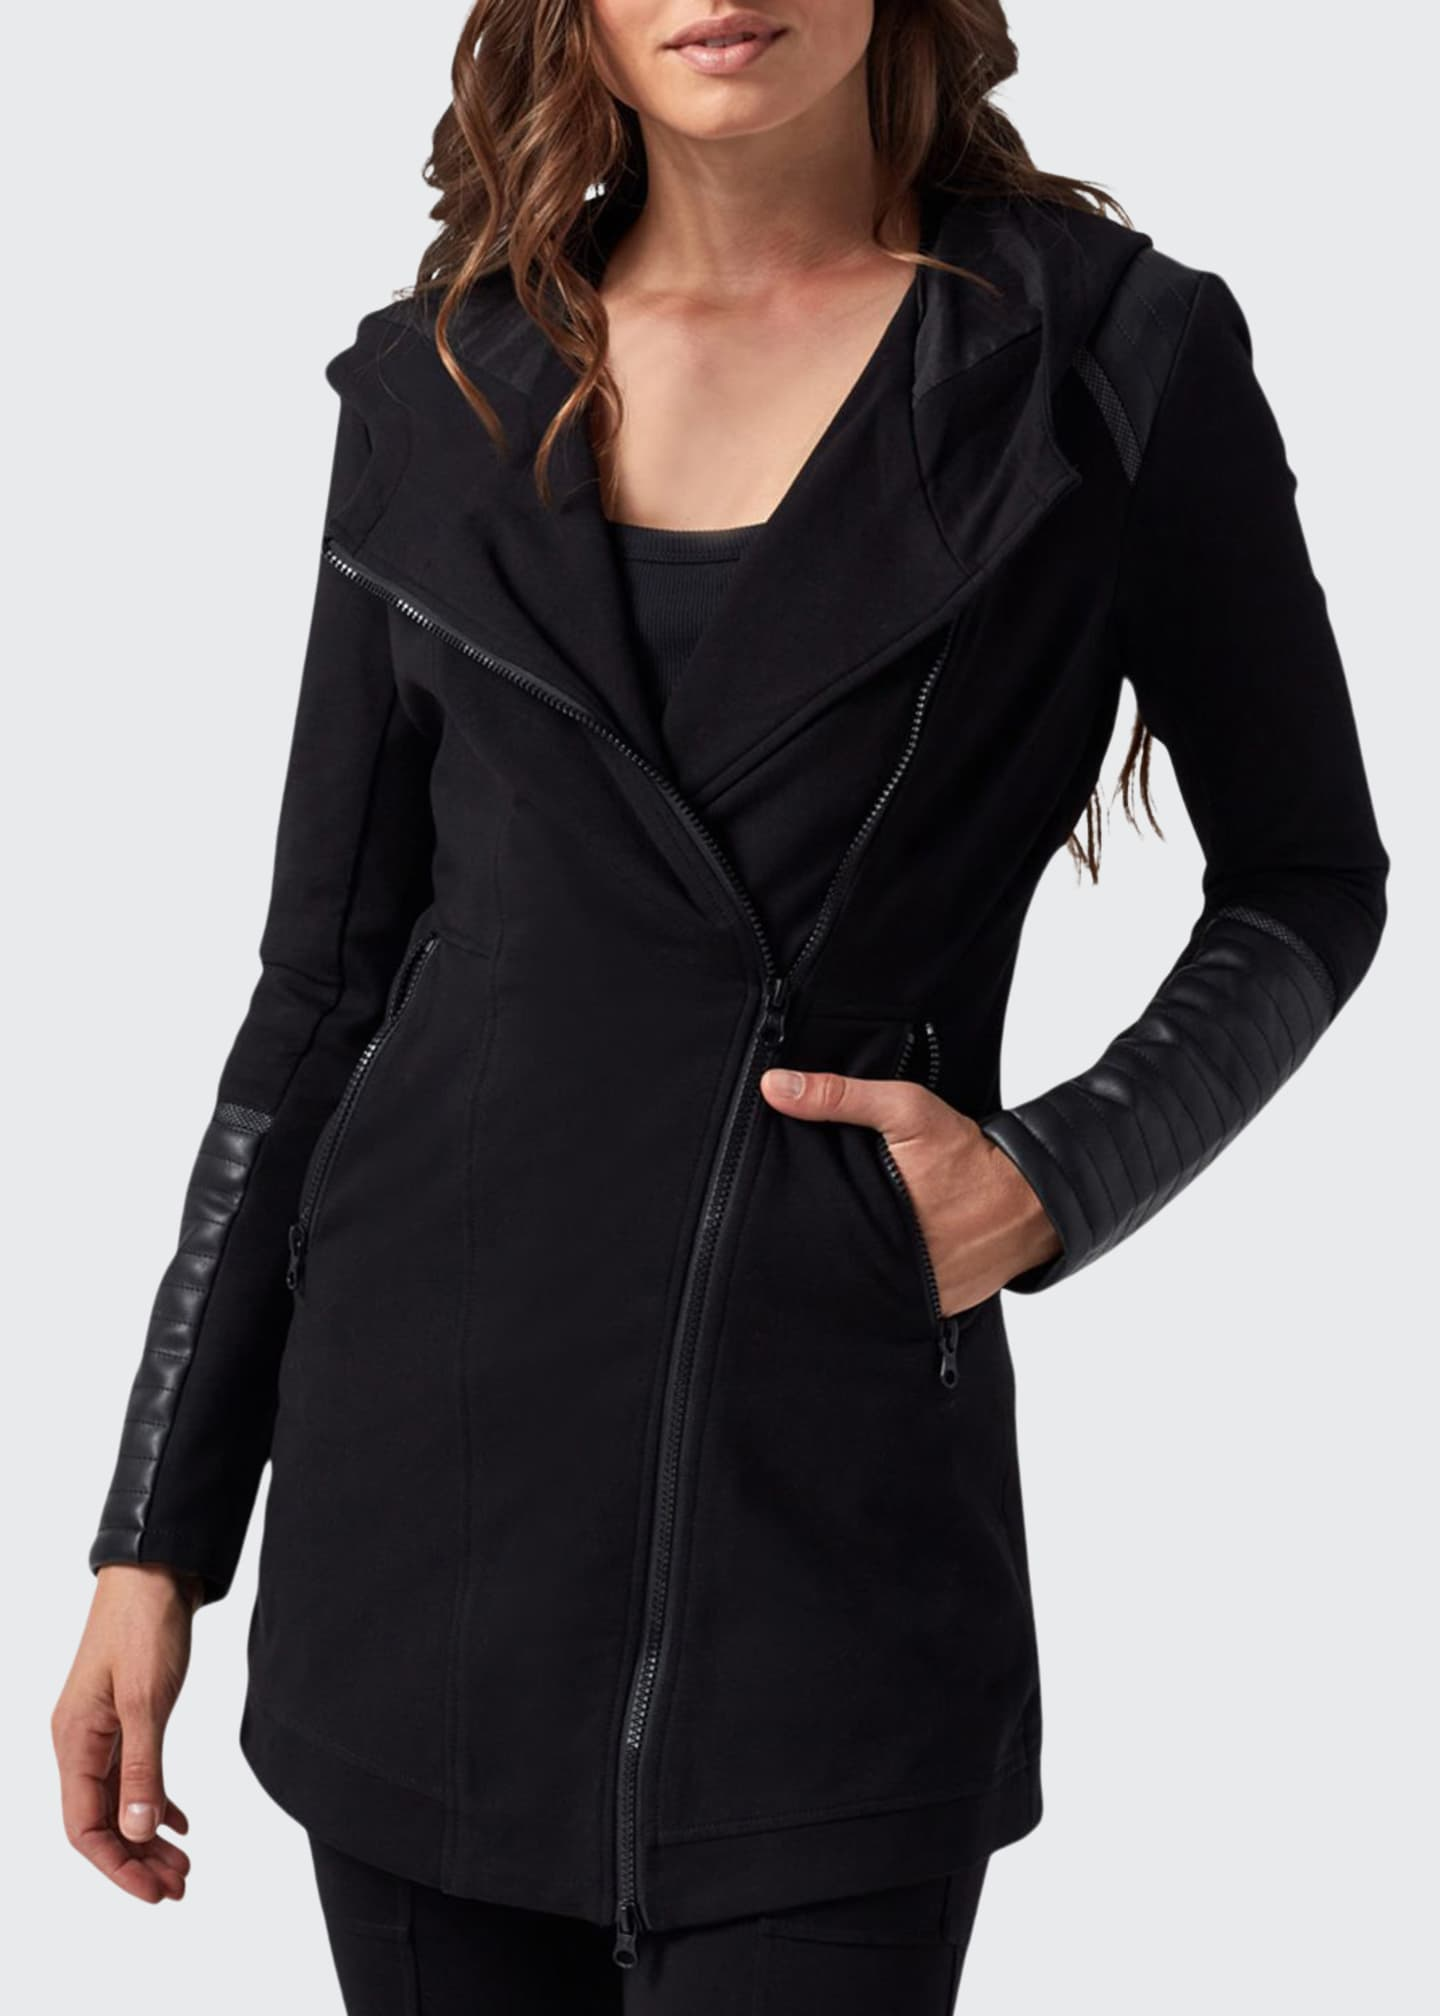 Blanc Noir Hooded Traveler Jacket